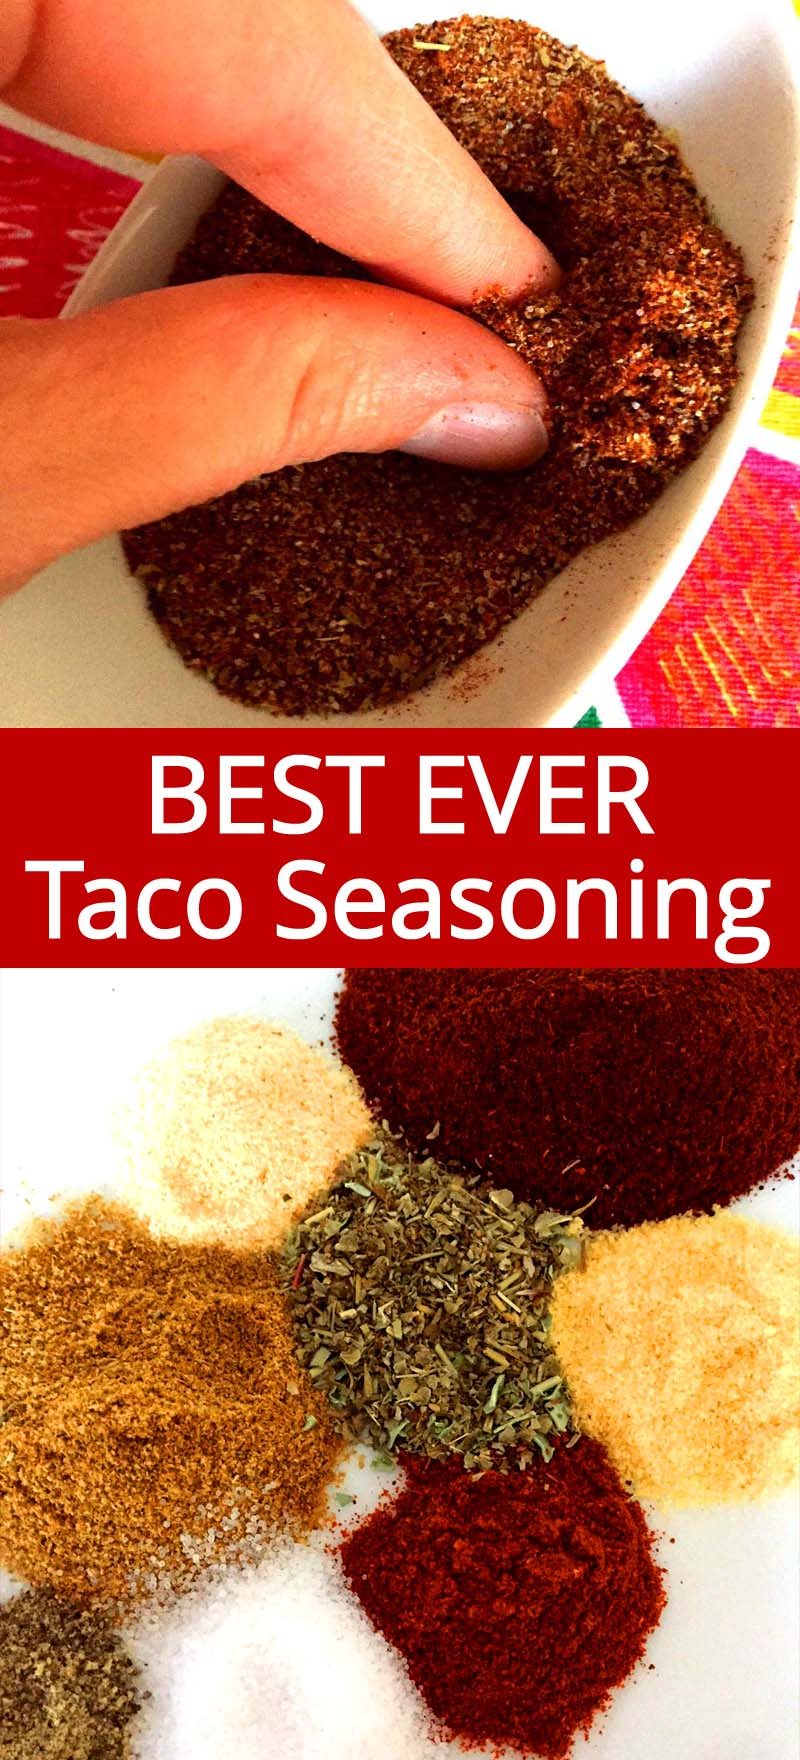 This homemade taco seasoning mix tastes so much better then store-bought! The spice flavor is so fresh, so clean and comes through perfectly! Once you try making your own taco seasoning, you'll never buy the pre-mixed one in the jar!